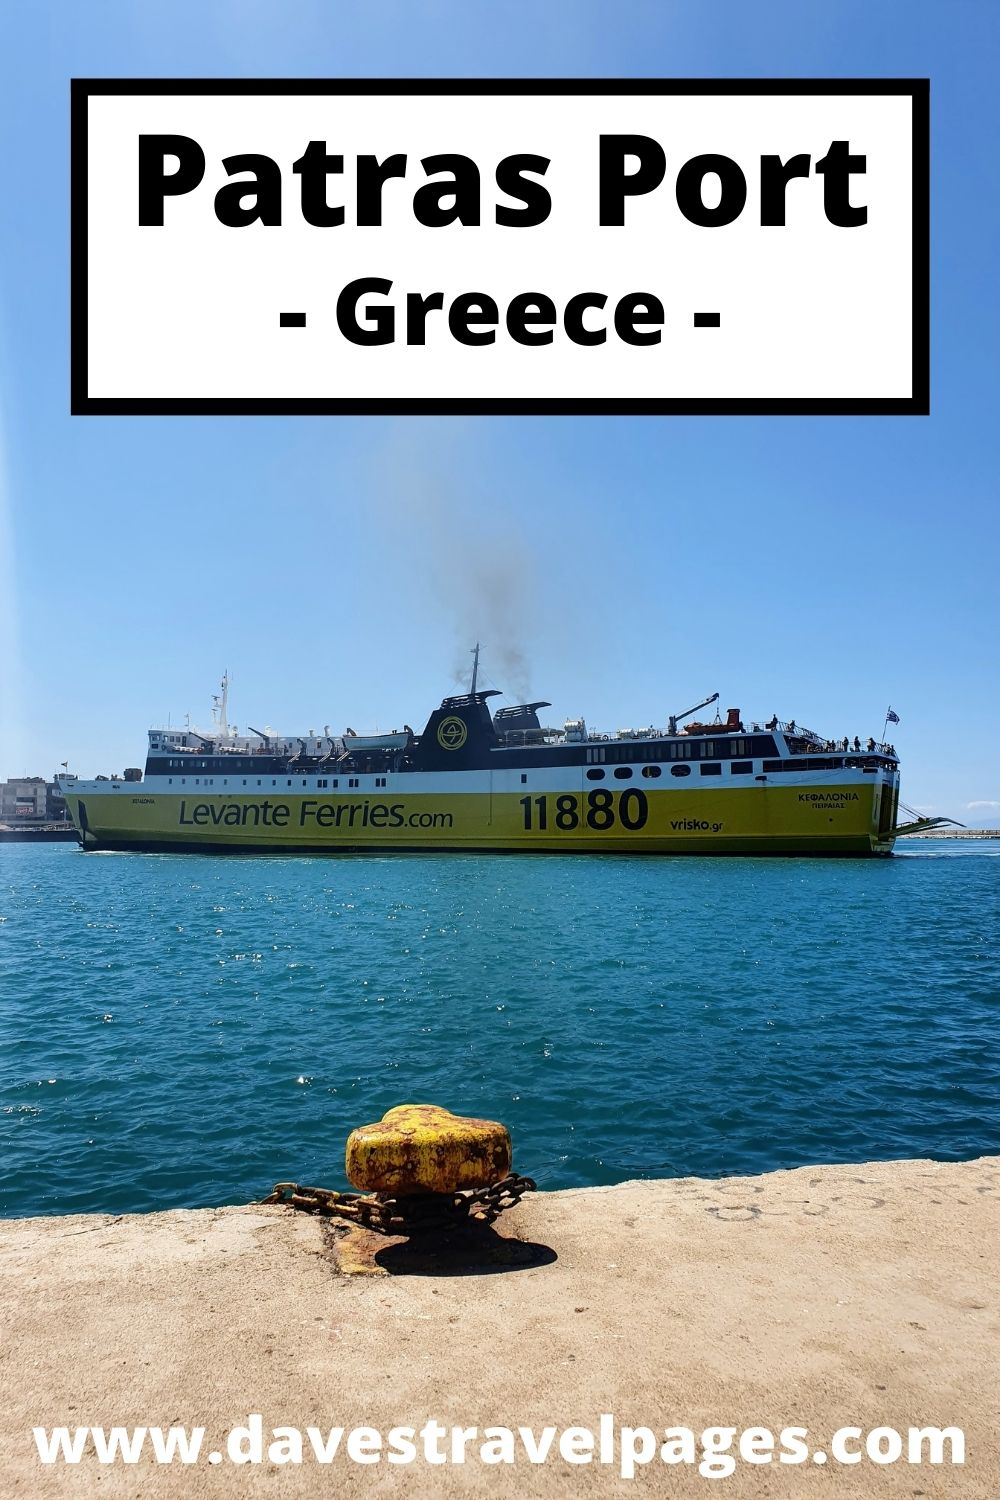 A guide to the Port of Patras in Greece